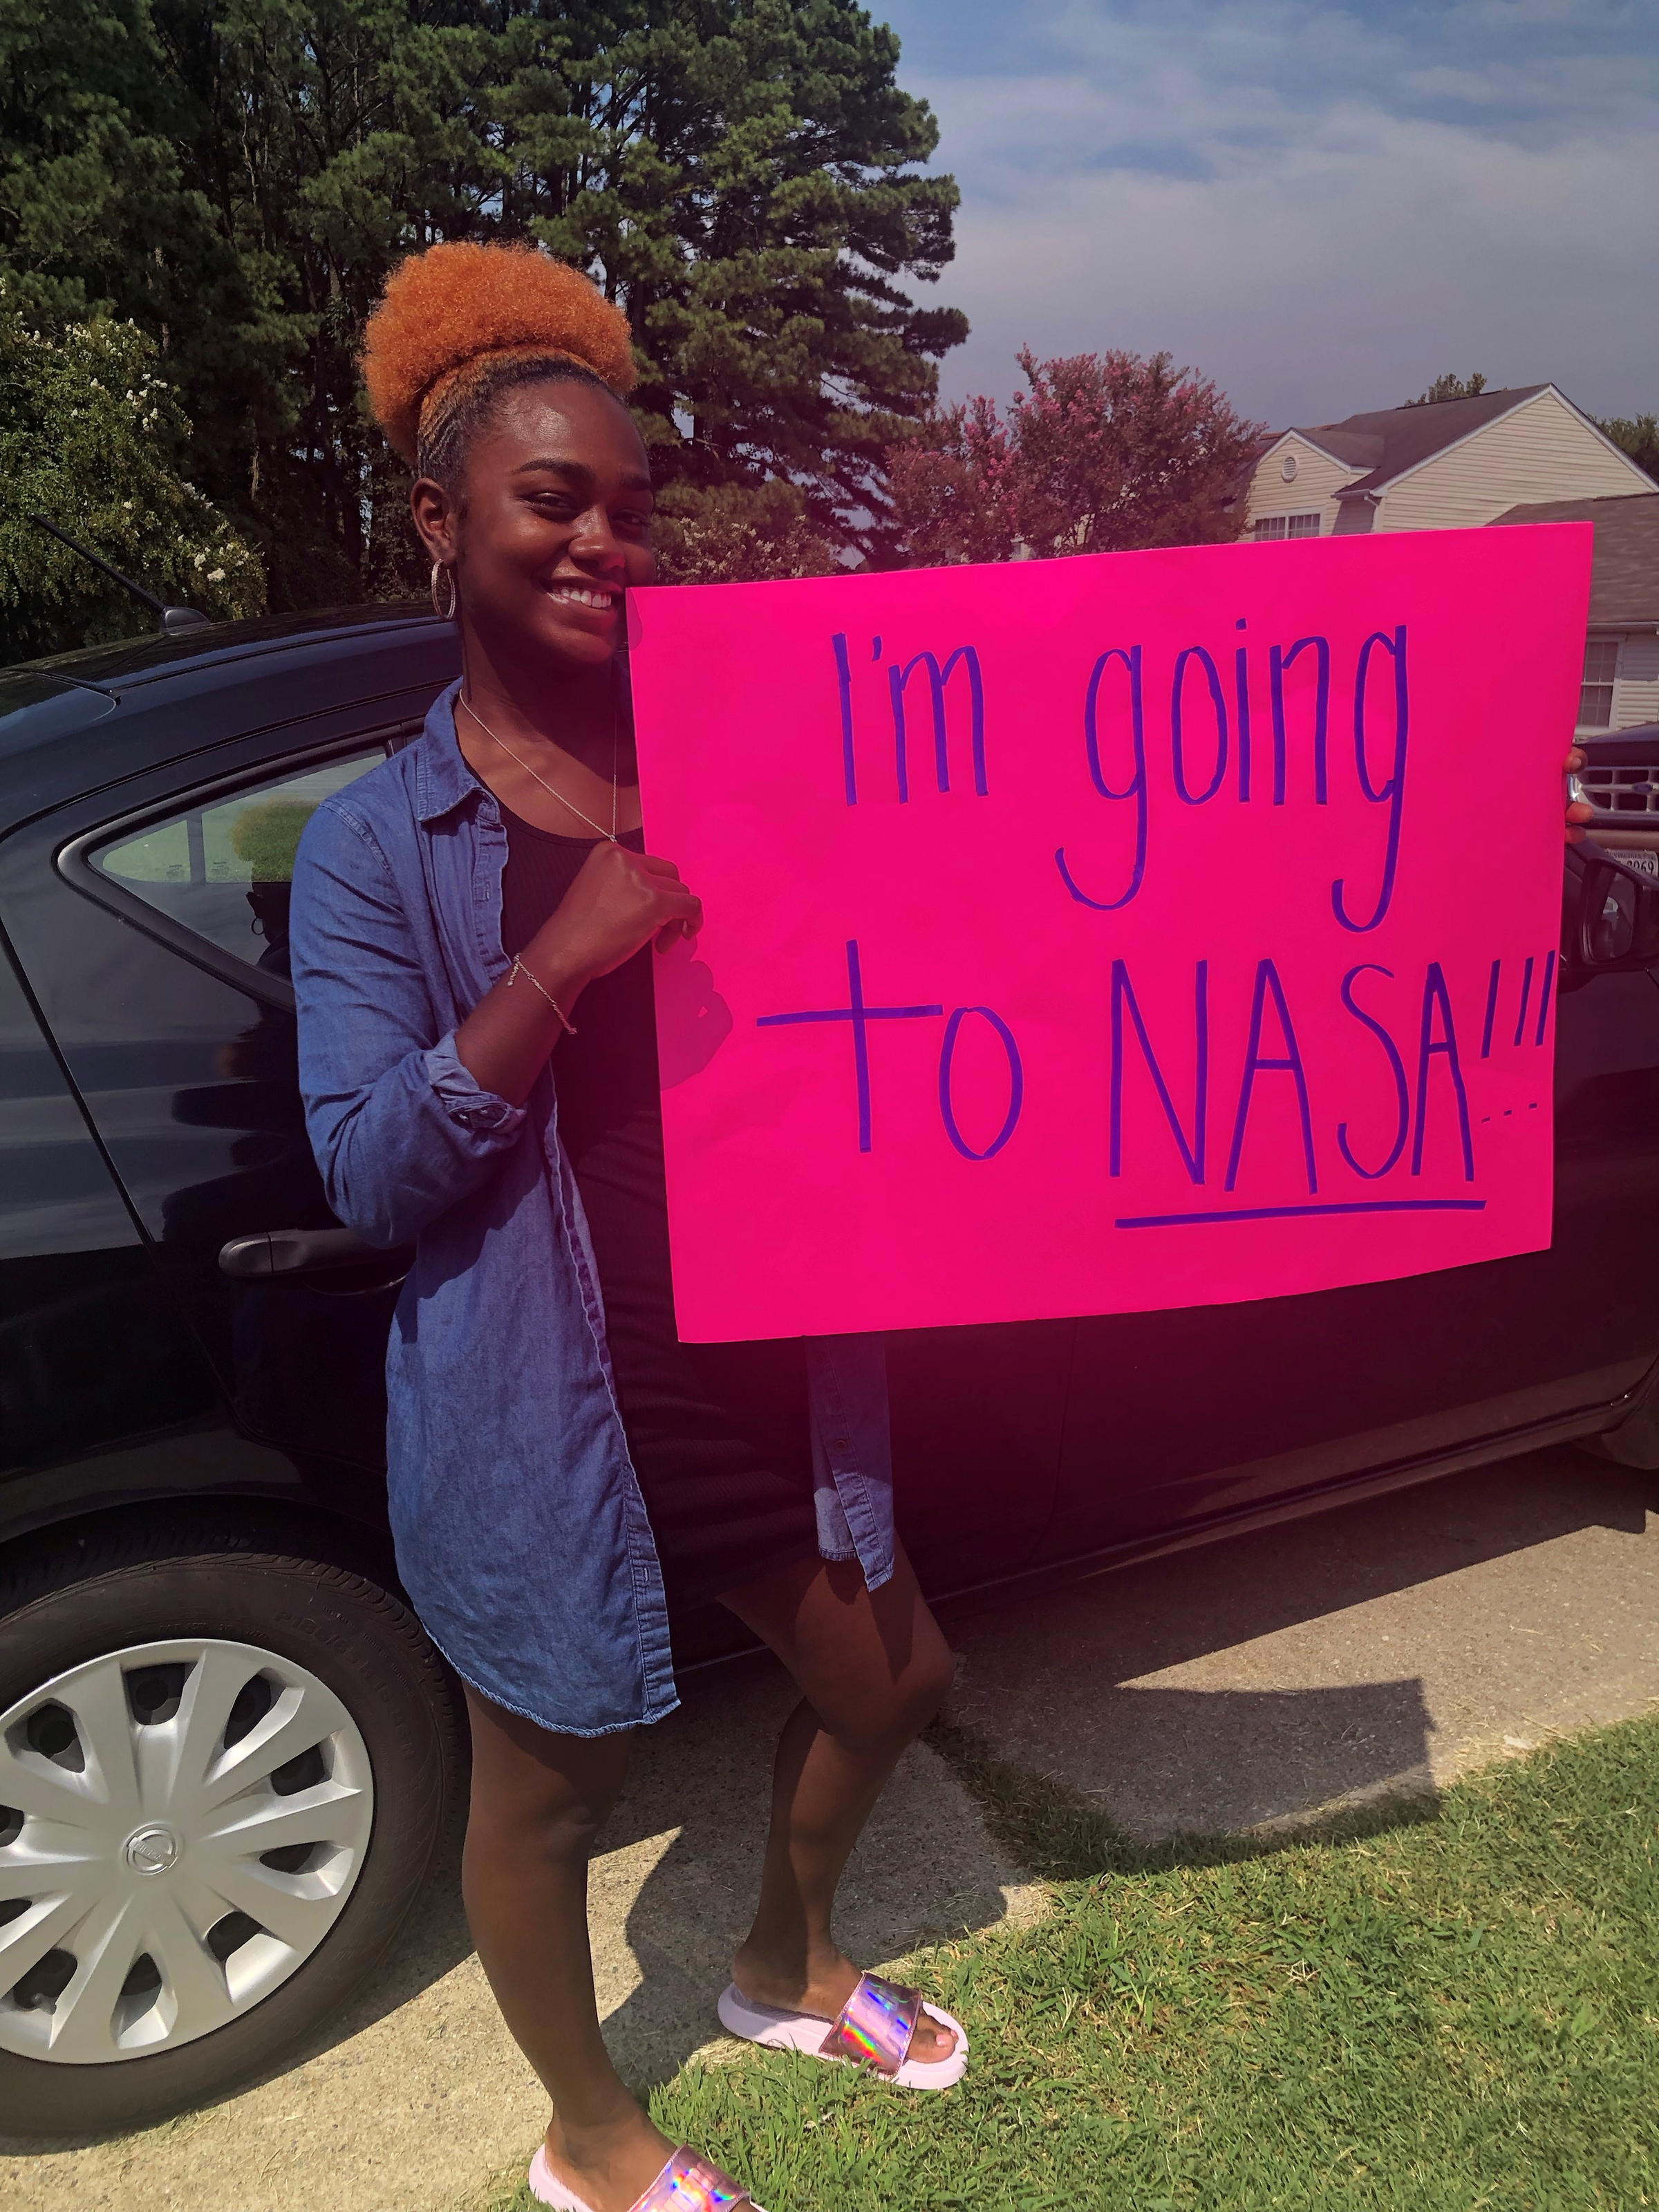 Camp student headed for NASA in October